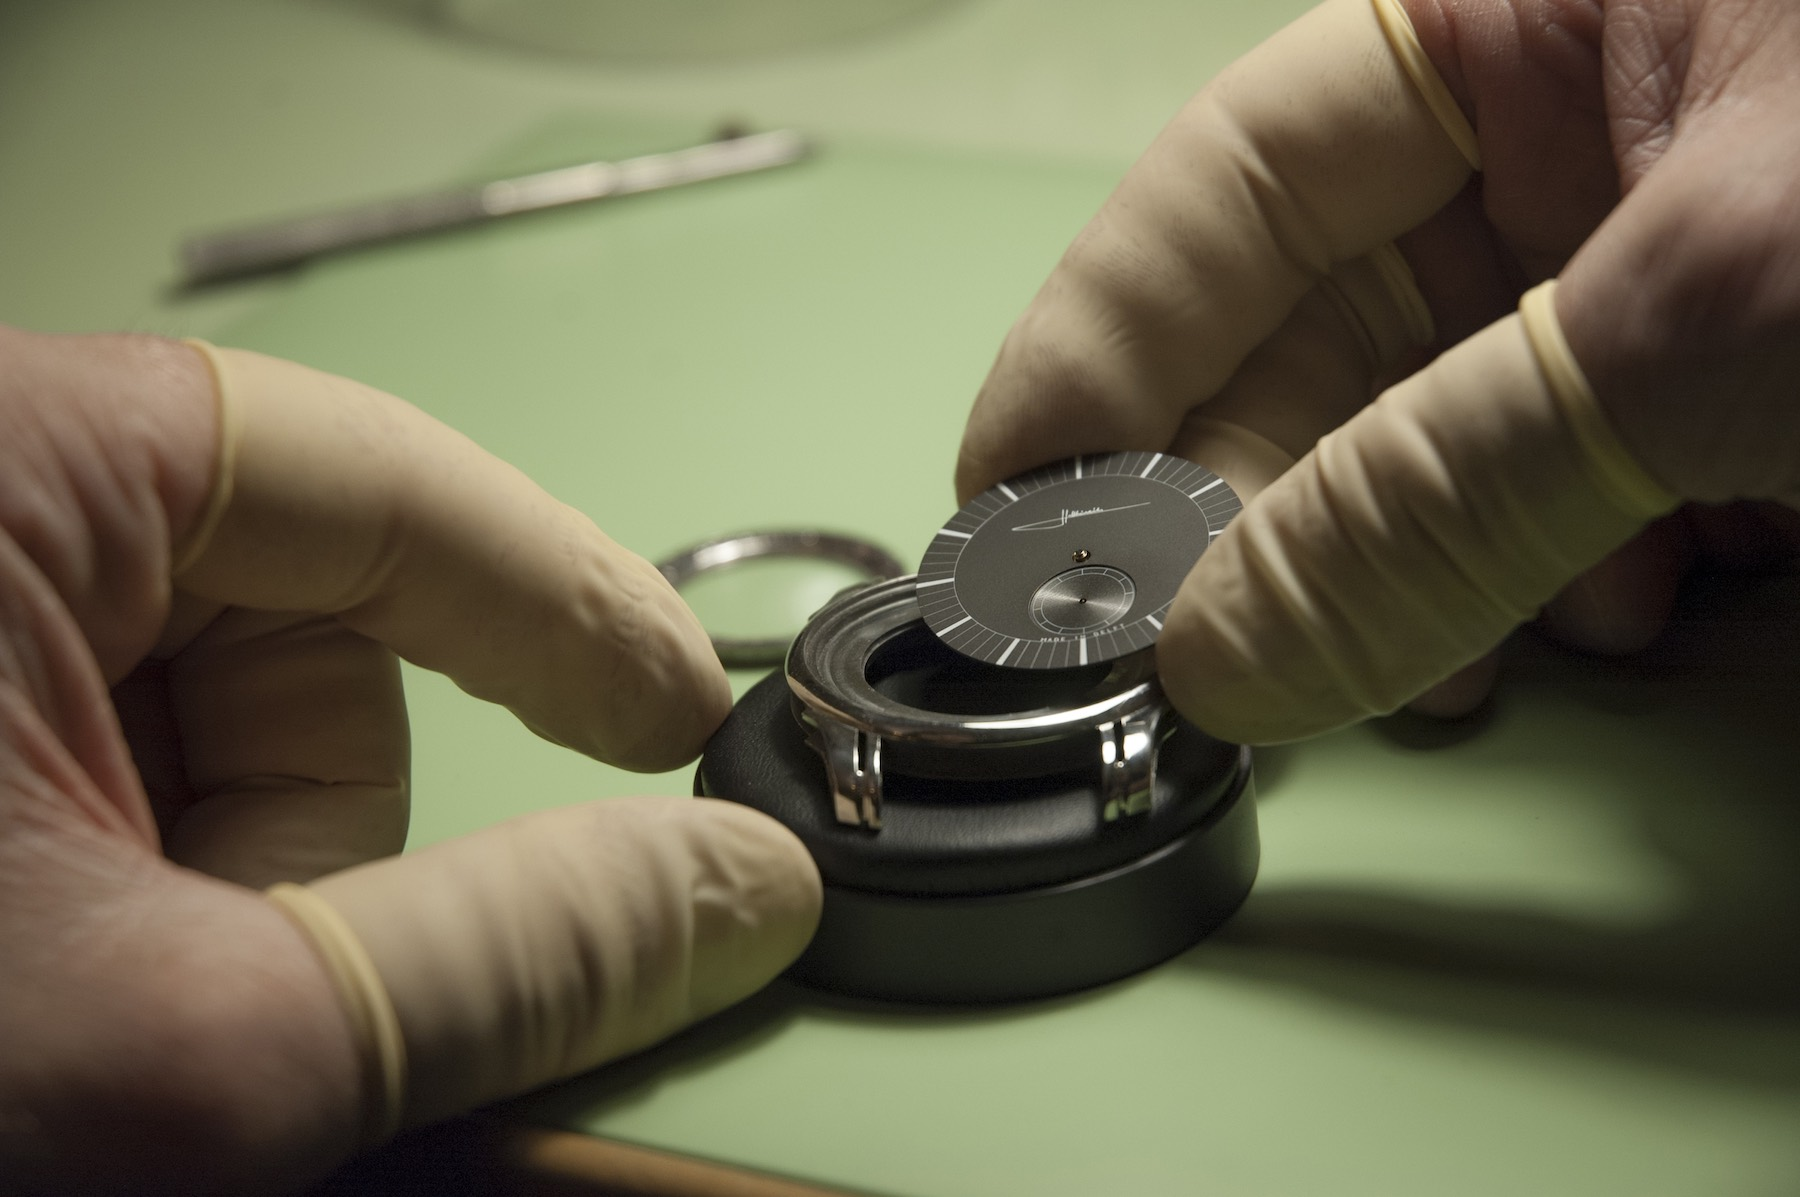 Holthinrichs Watches 3D-printed watches - 12